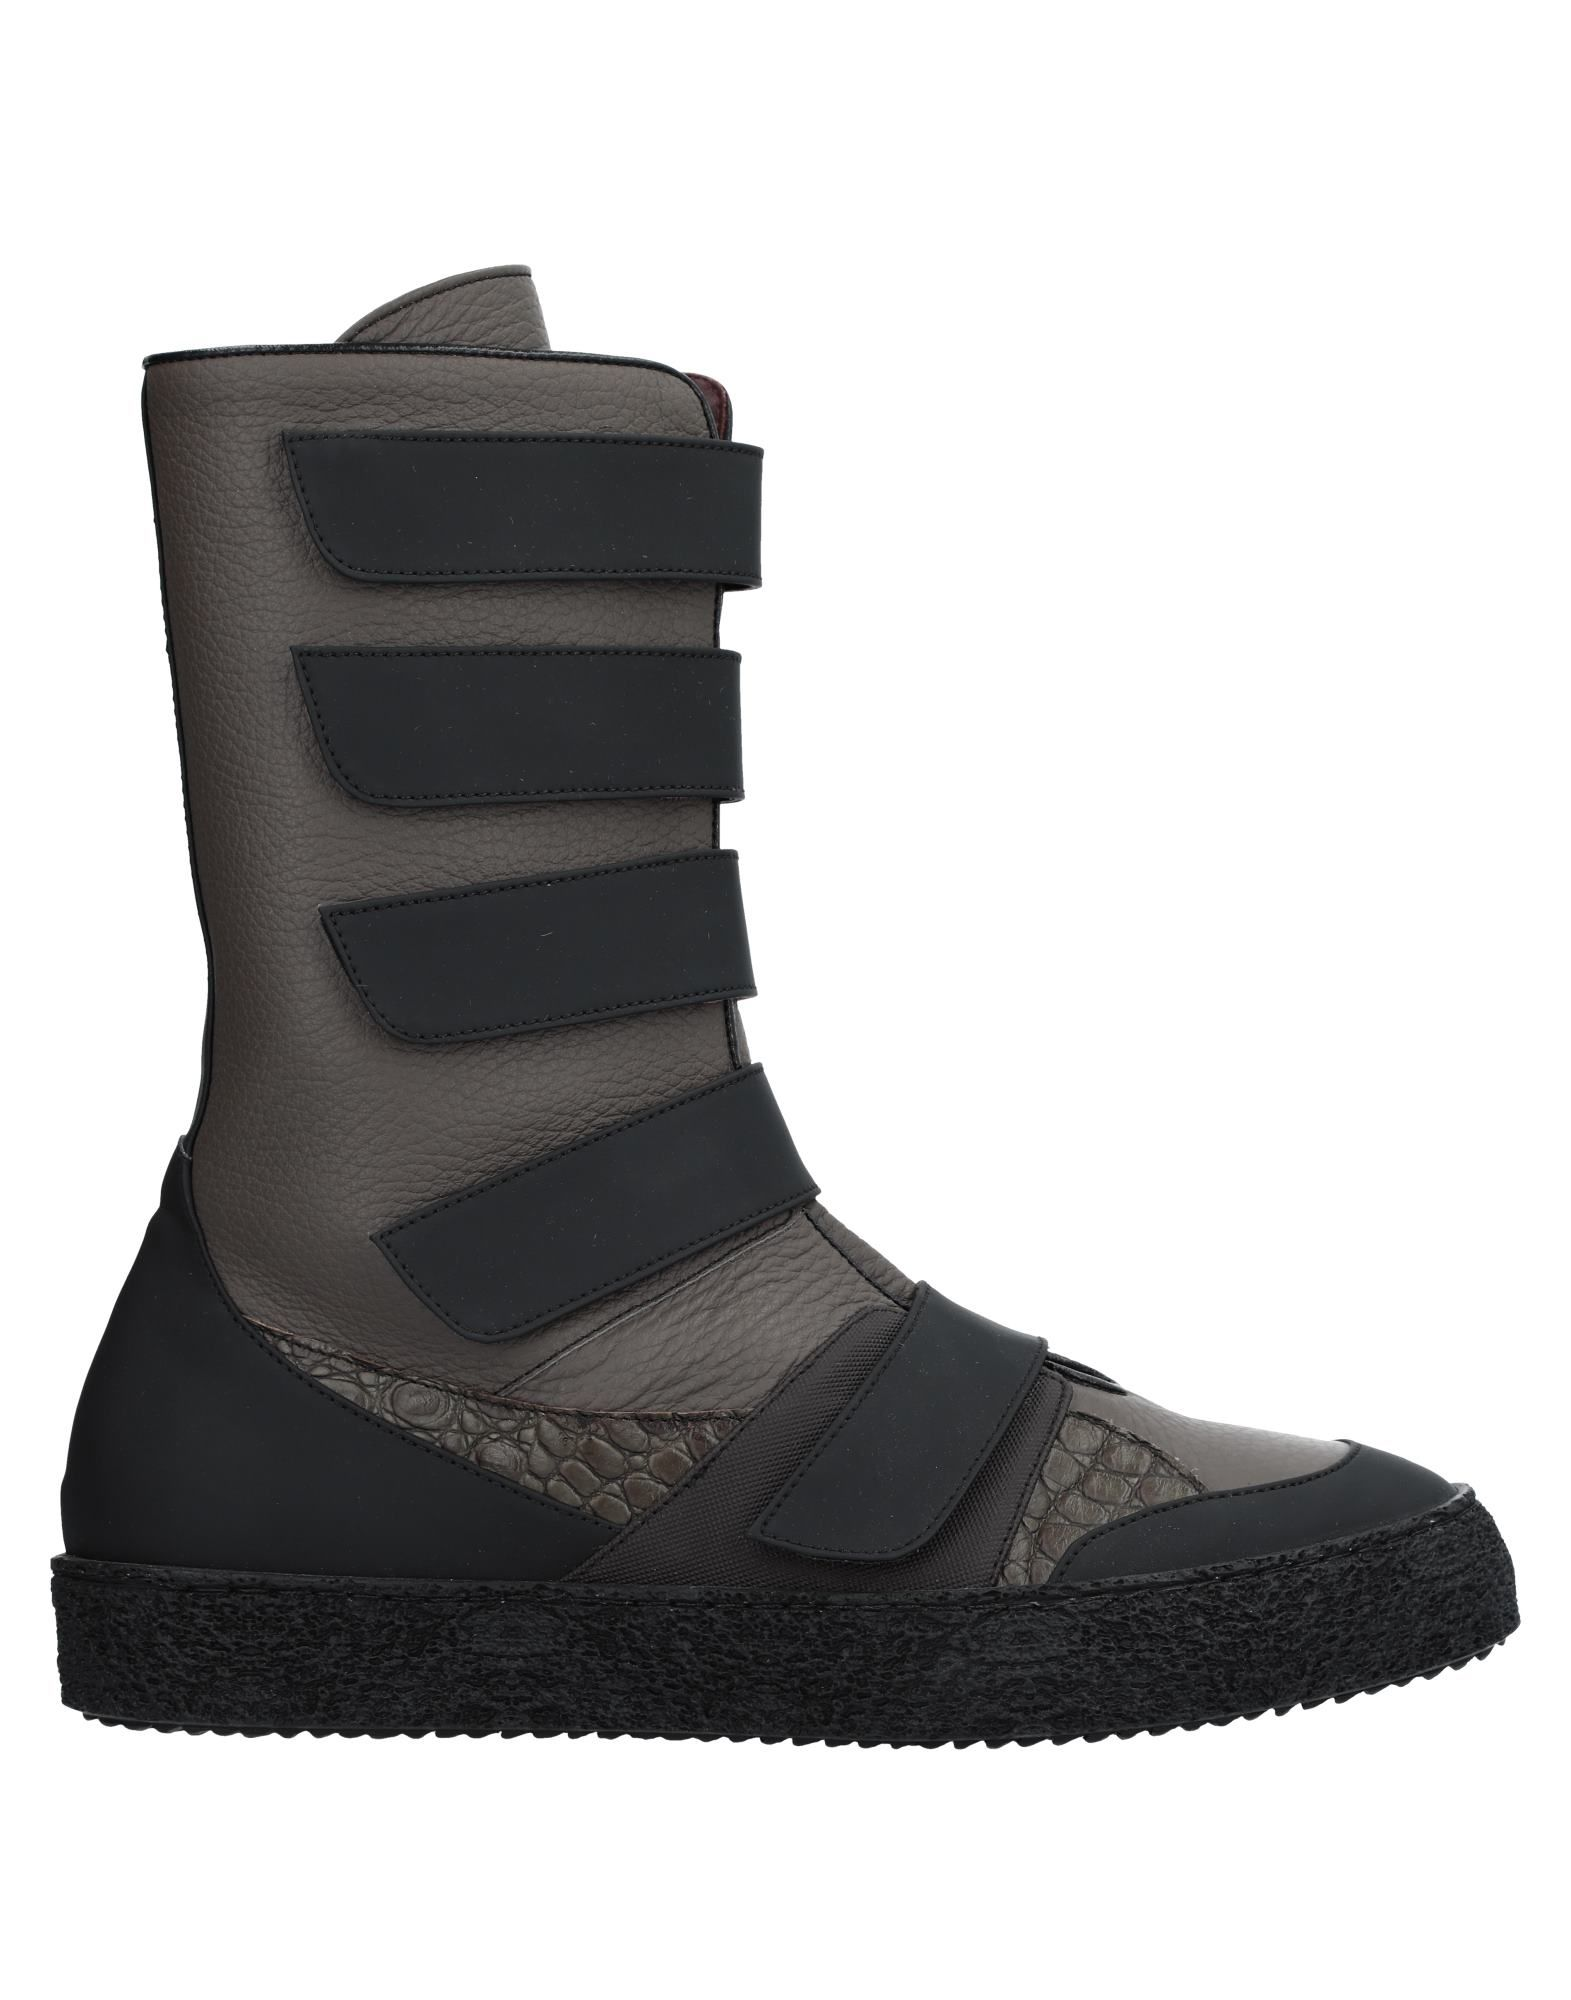 Antonio Marras Boots - Men Antonio Marras Boots - online on  Canada - Boots 11531126IP 1472a3